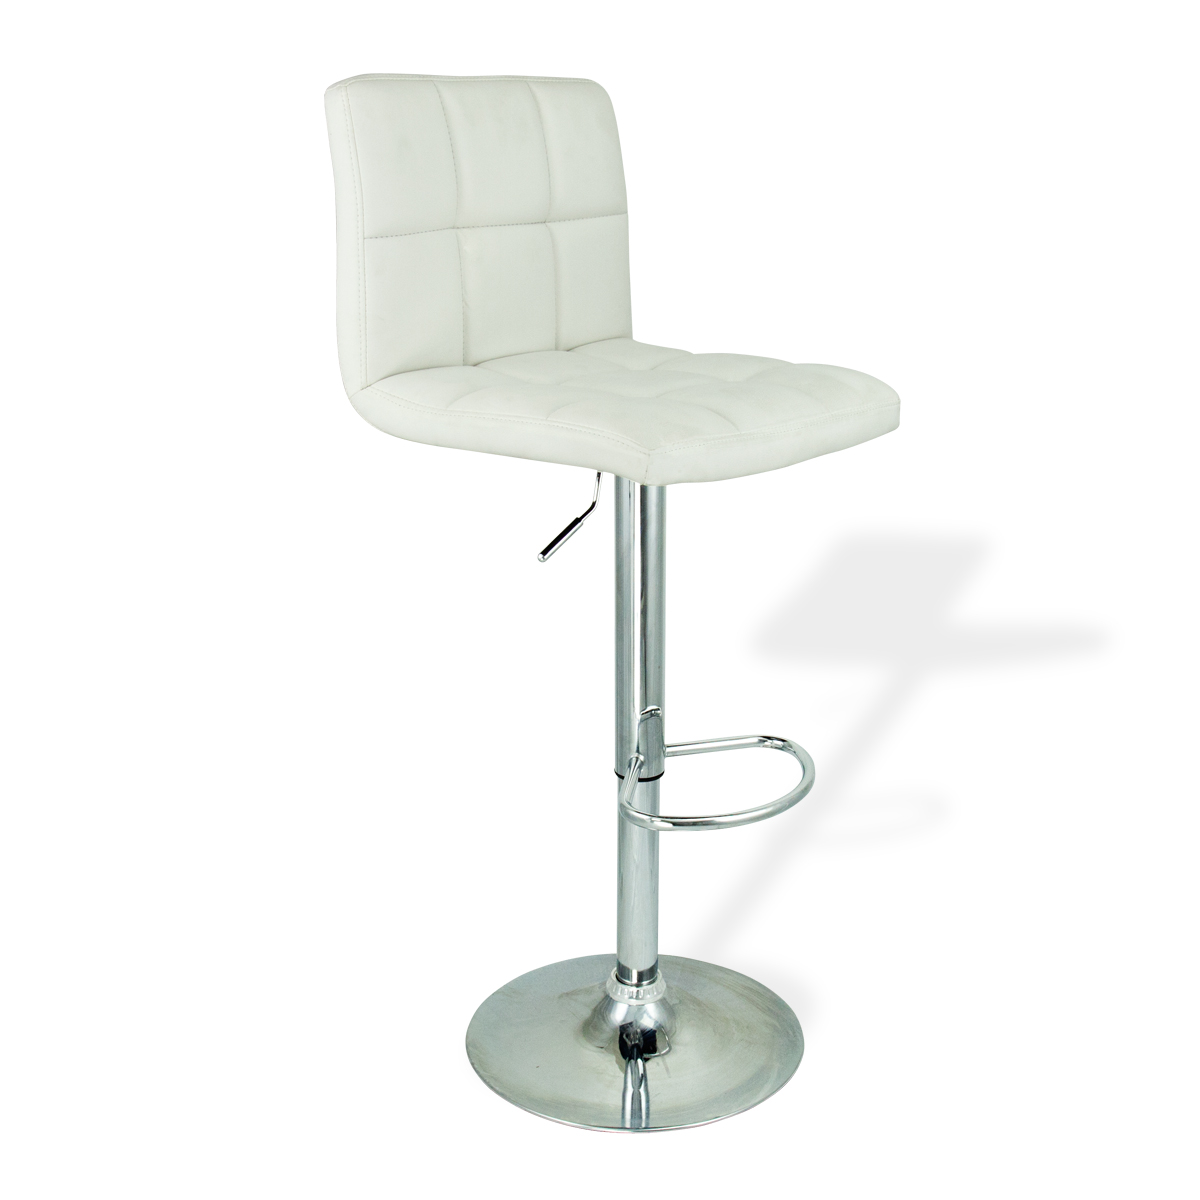 Bar Stools Leather Set Of 2 White Swivel Bar Pub Barstools Modern Design New Ebay